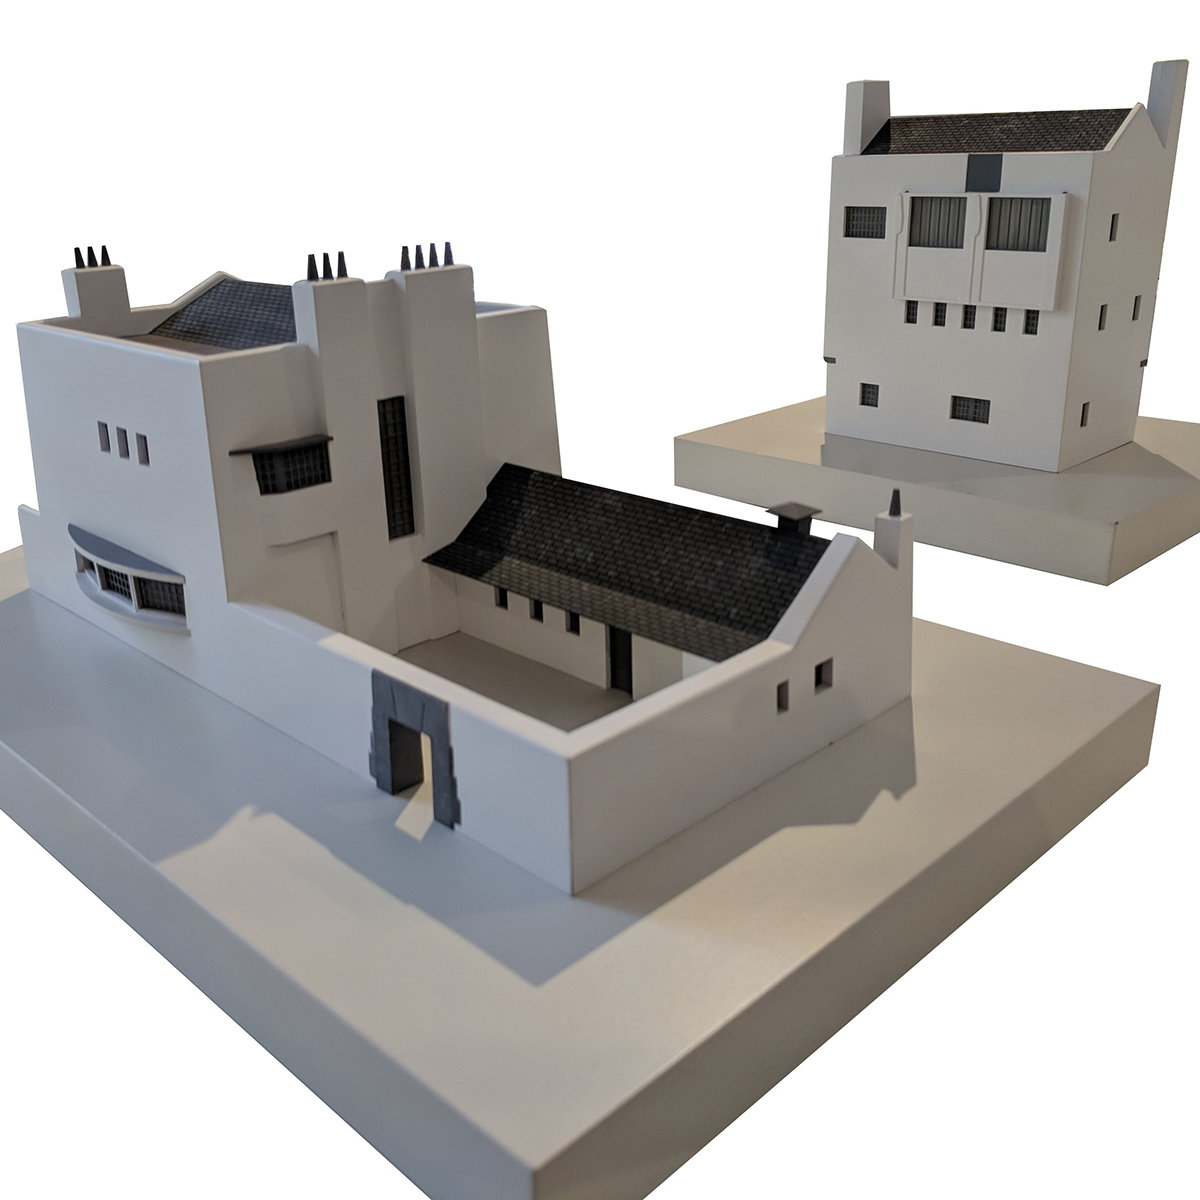 Mackintosh Architectural Competition